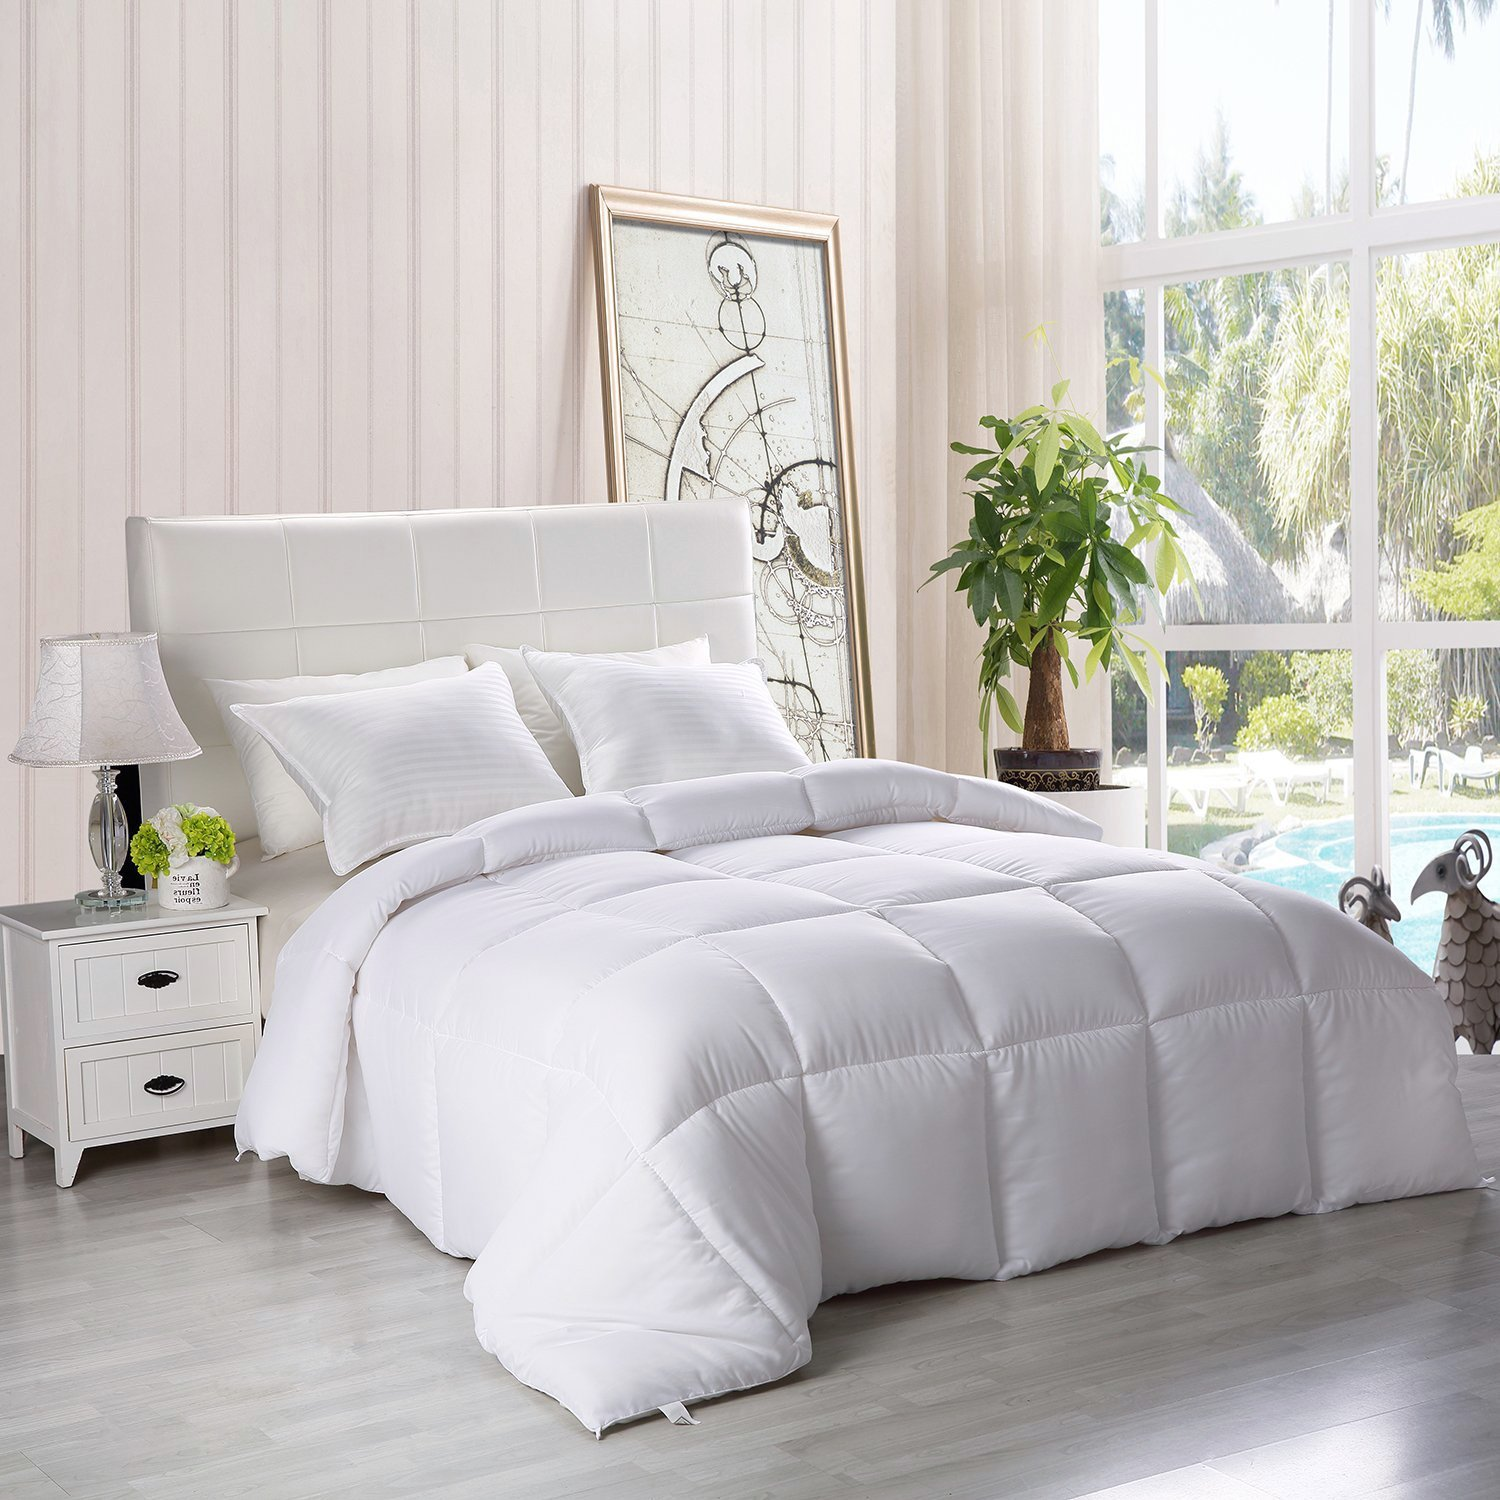 Lightweight Comforter, Ultra Soft Down Alternative White, King All Season Comforter